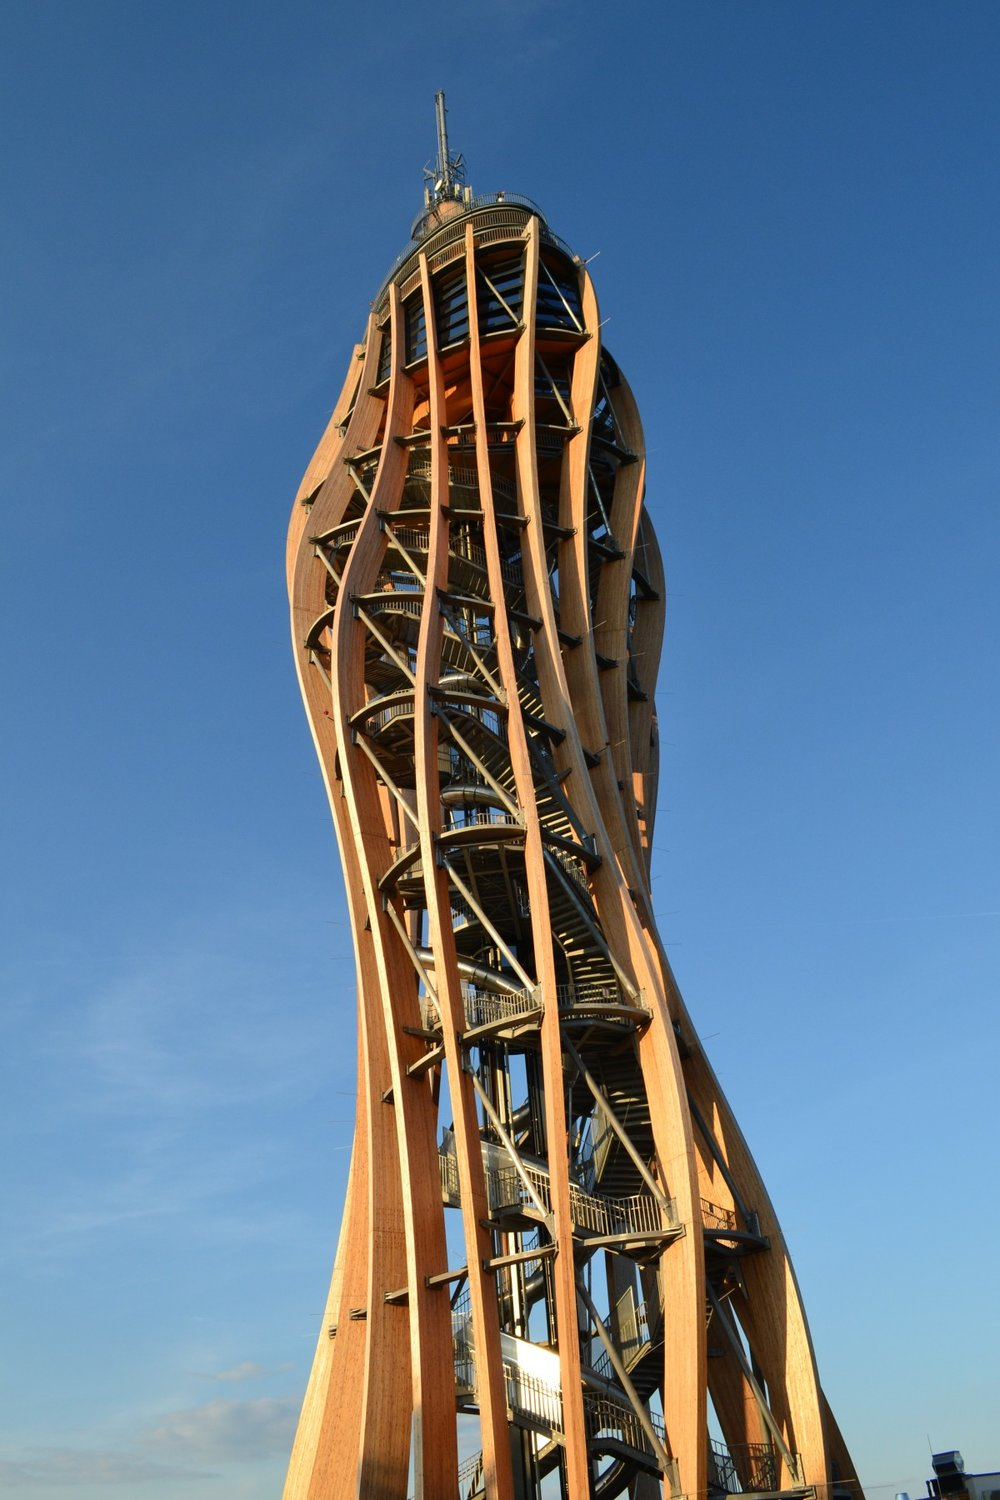 pyramidenkogel_carinthia_tower_wooden_tower_wood_architecture_observation_deck_building-1003149.jpg